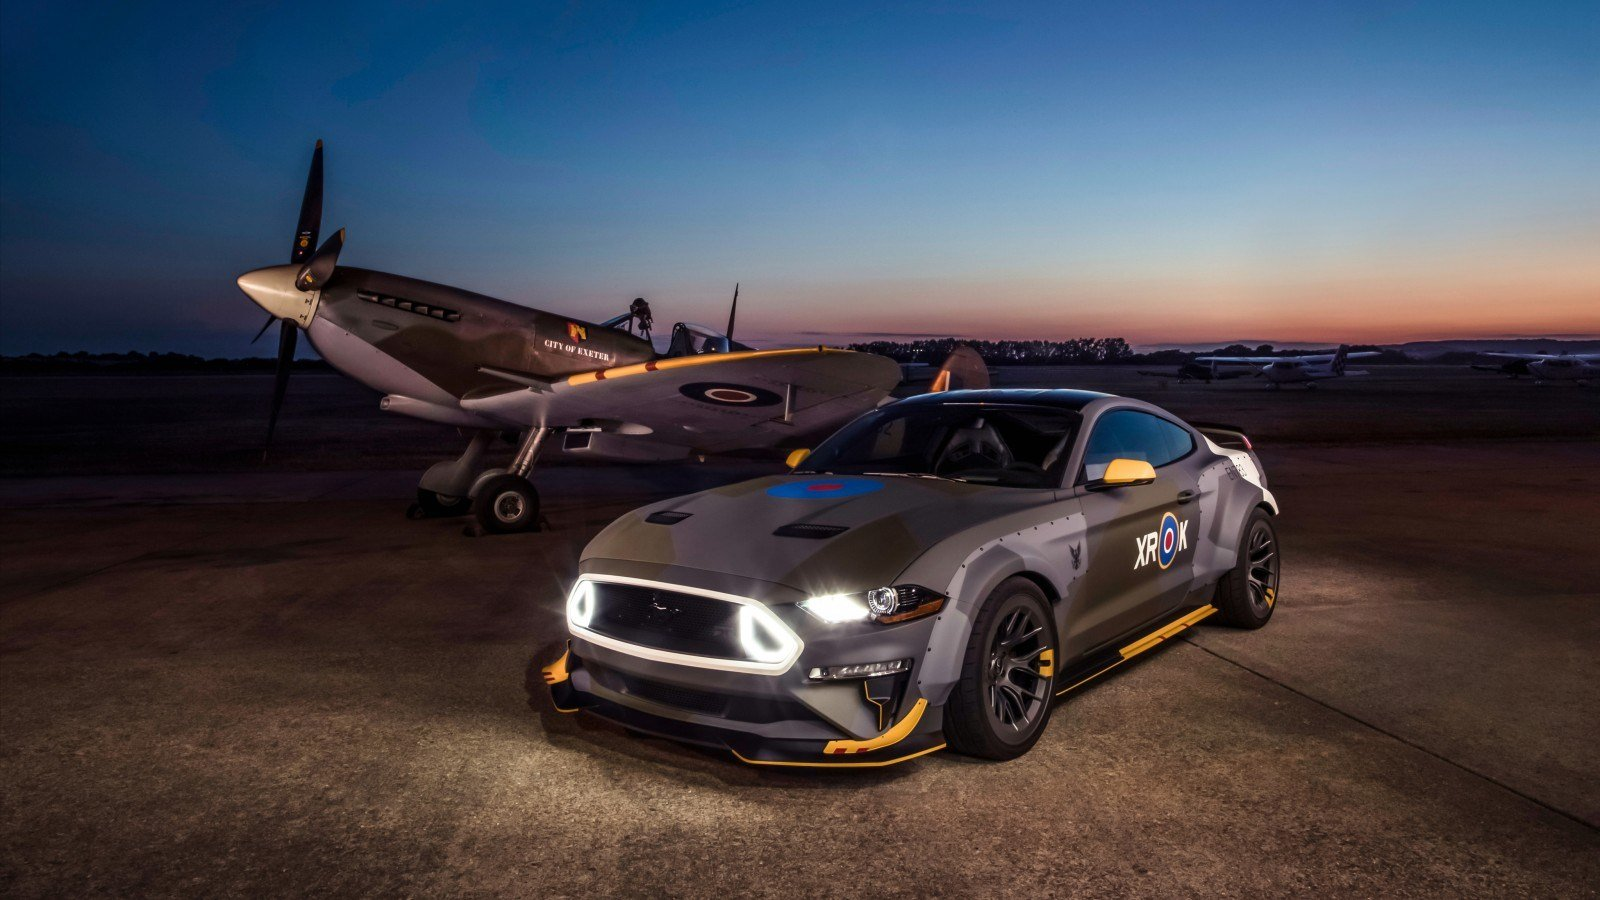 Latest Ford Eagle Squadron Mustang Gt 2018 4K 2 Wallpaper Hd Free Download